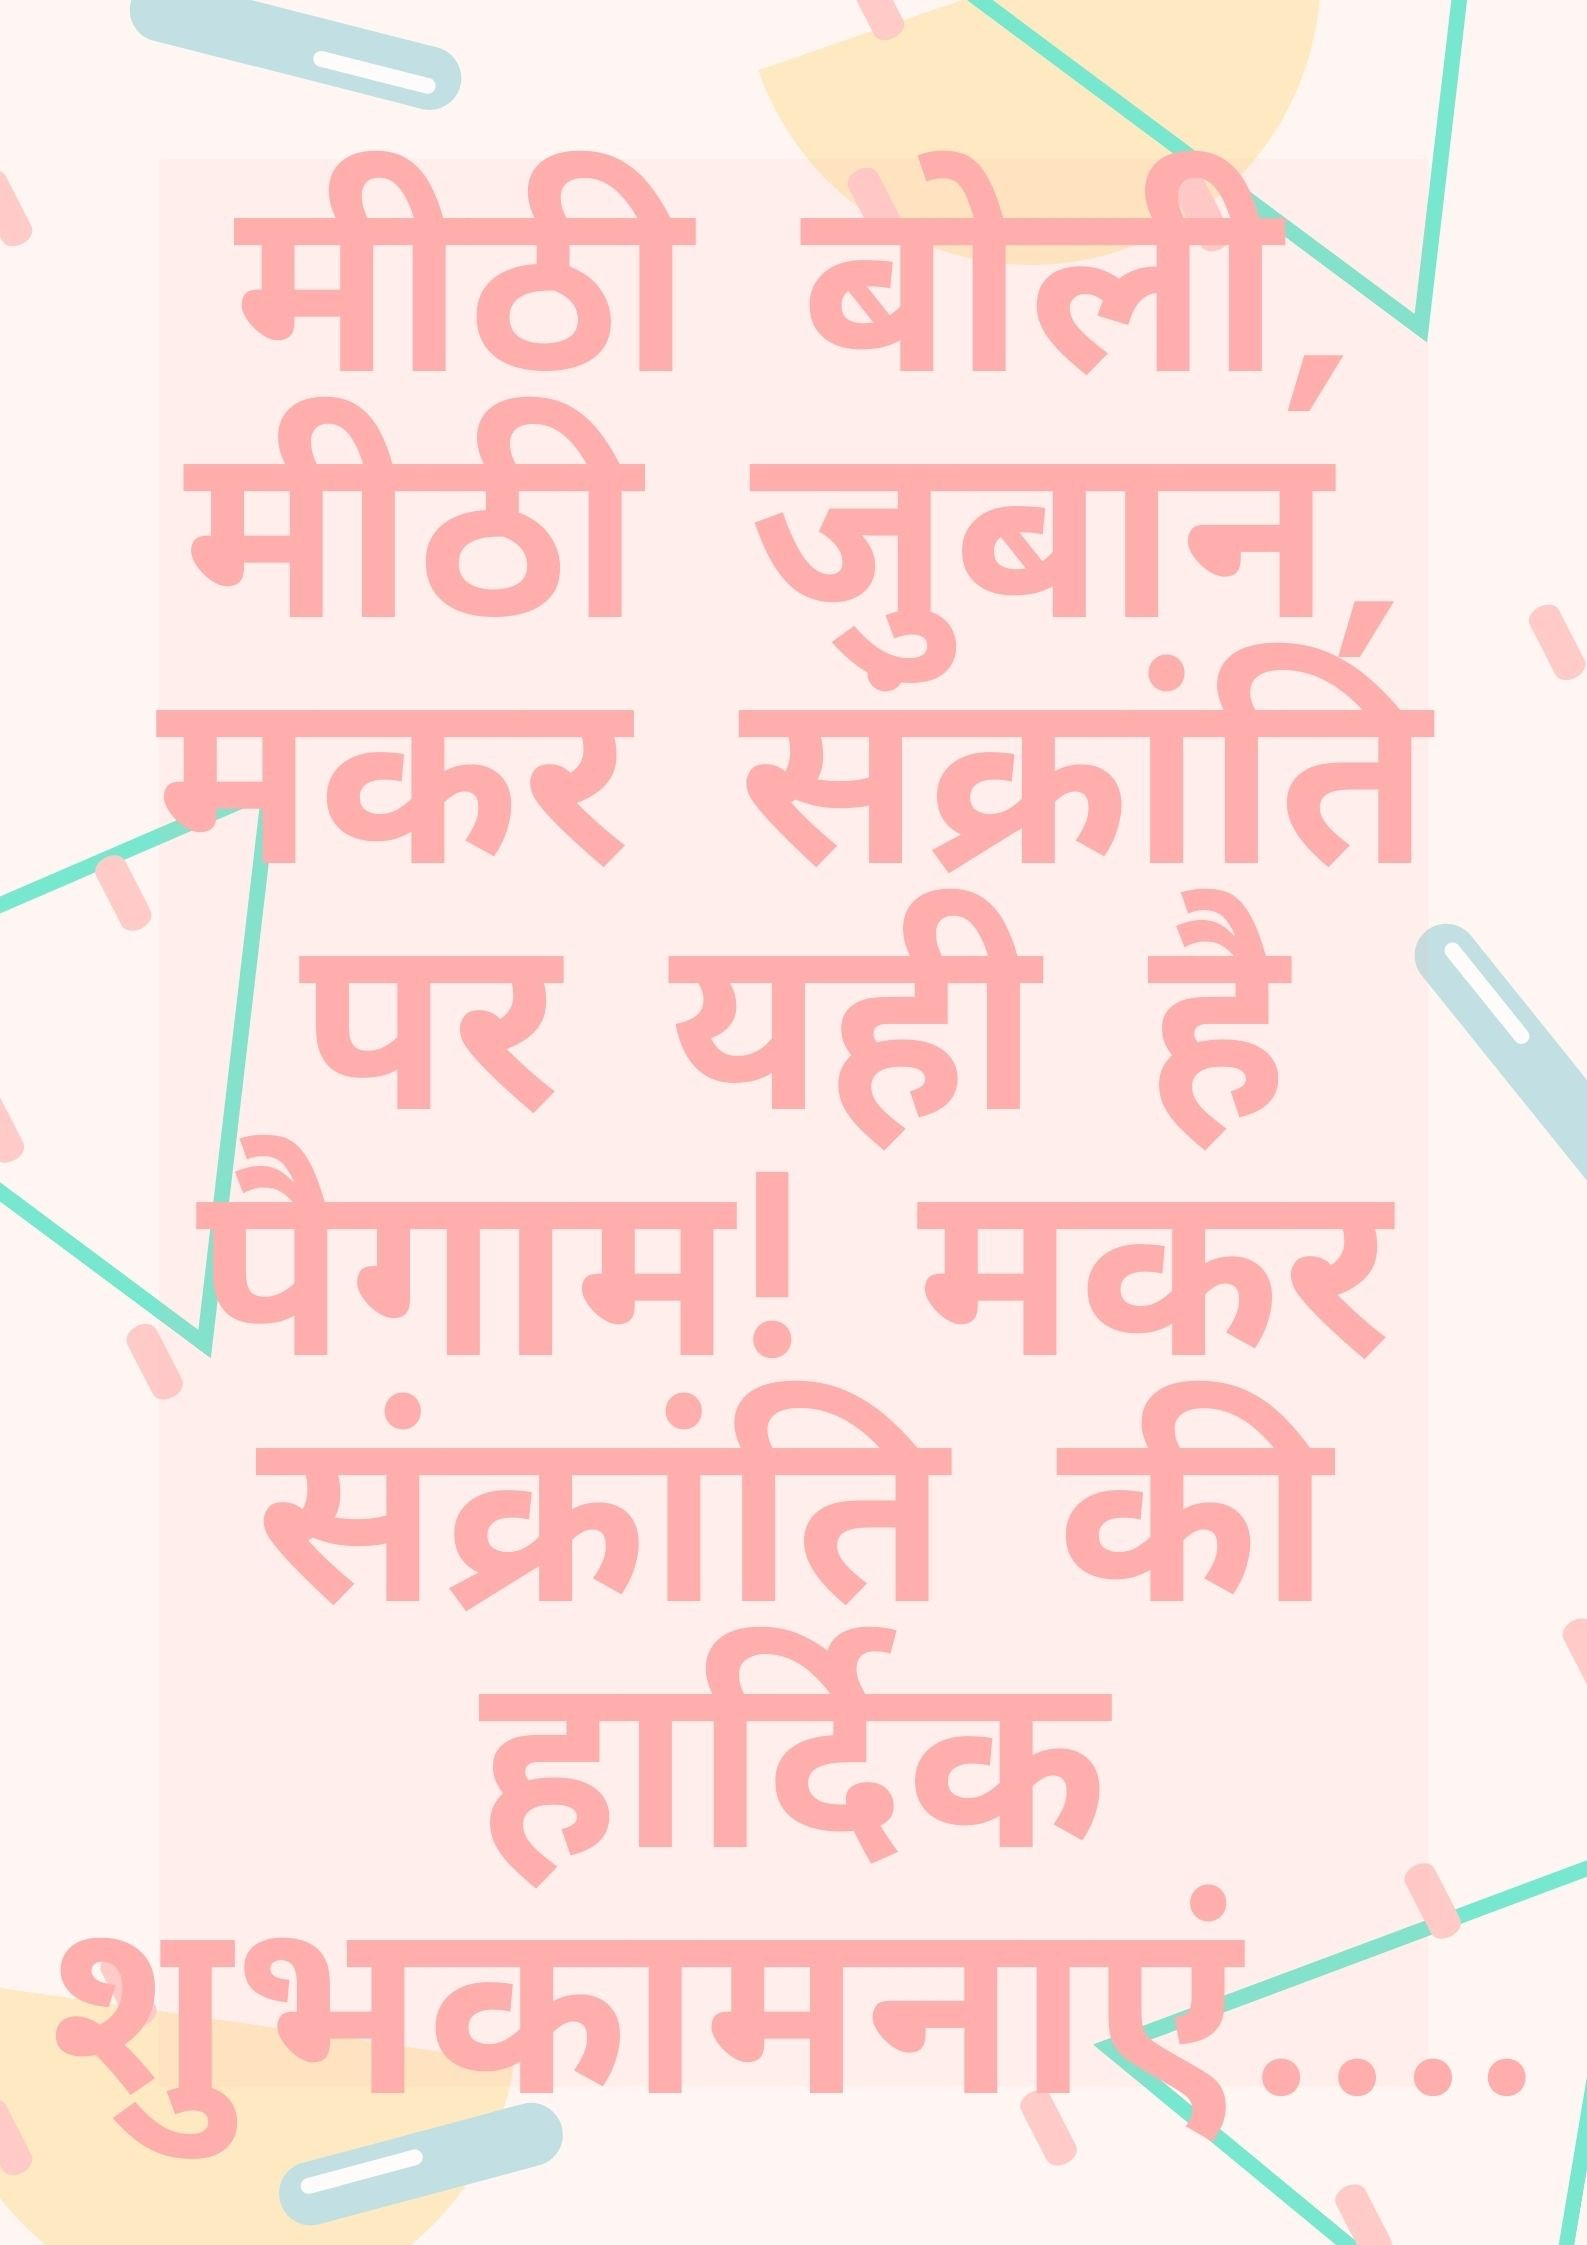 Makar Sankranti Quotes In Hindi  - Makar Sankranti Quotes in Hindi - MAKAR SANKRANTI Instagram Captions and Quotes 2021